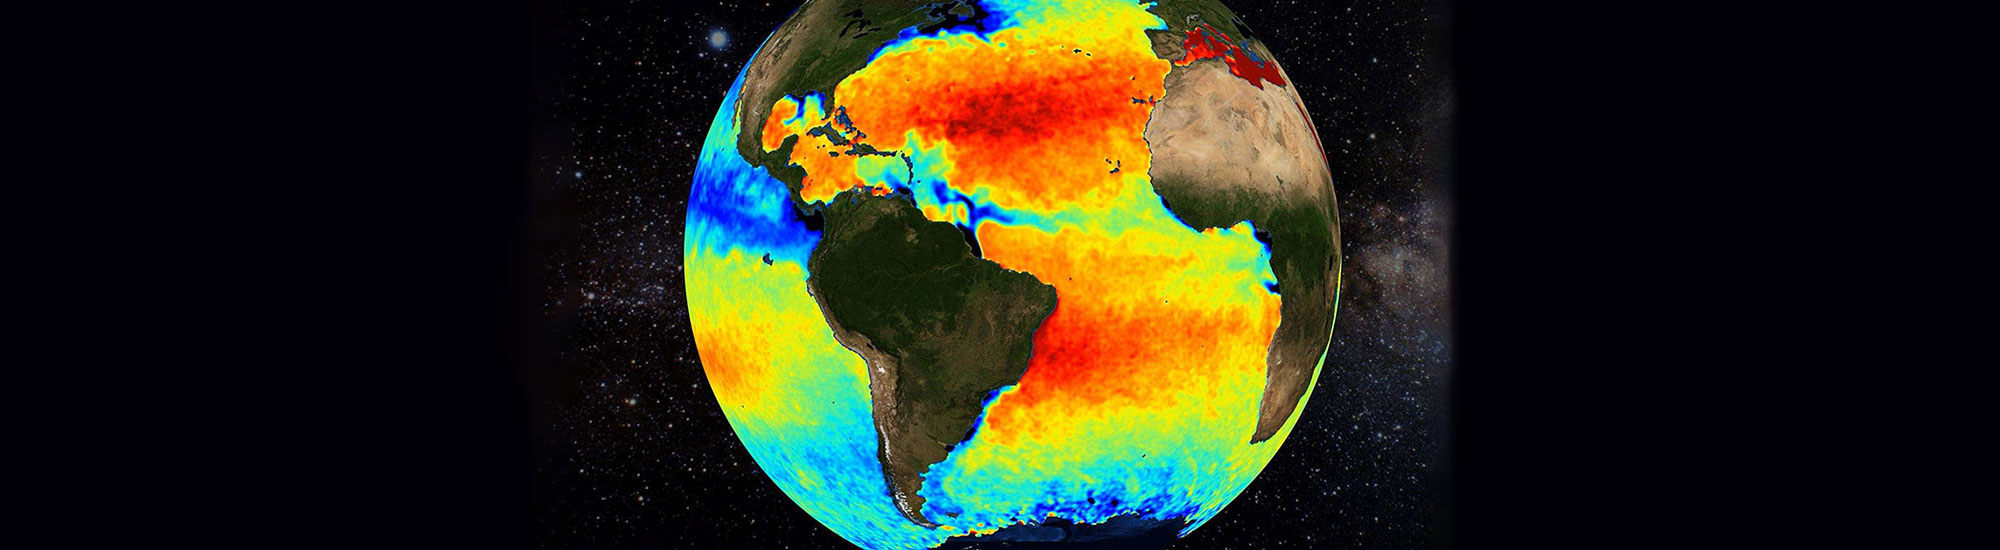 This graphic illustrates information gathered from the sea surface salinity from 31 March 2015 to 9 November 2020 based on the 8-day running mean version 5.0 Level 3 NASA Soil Moisture Active Passive (SMAP) dataset from JPL.